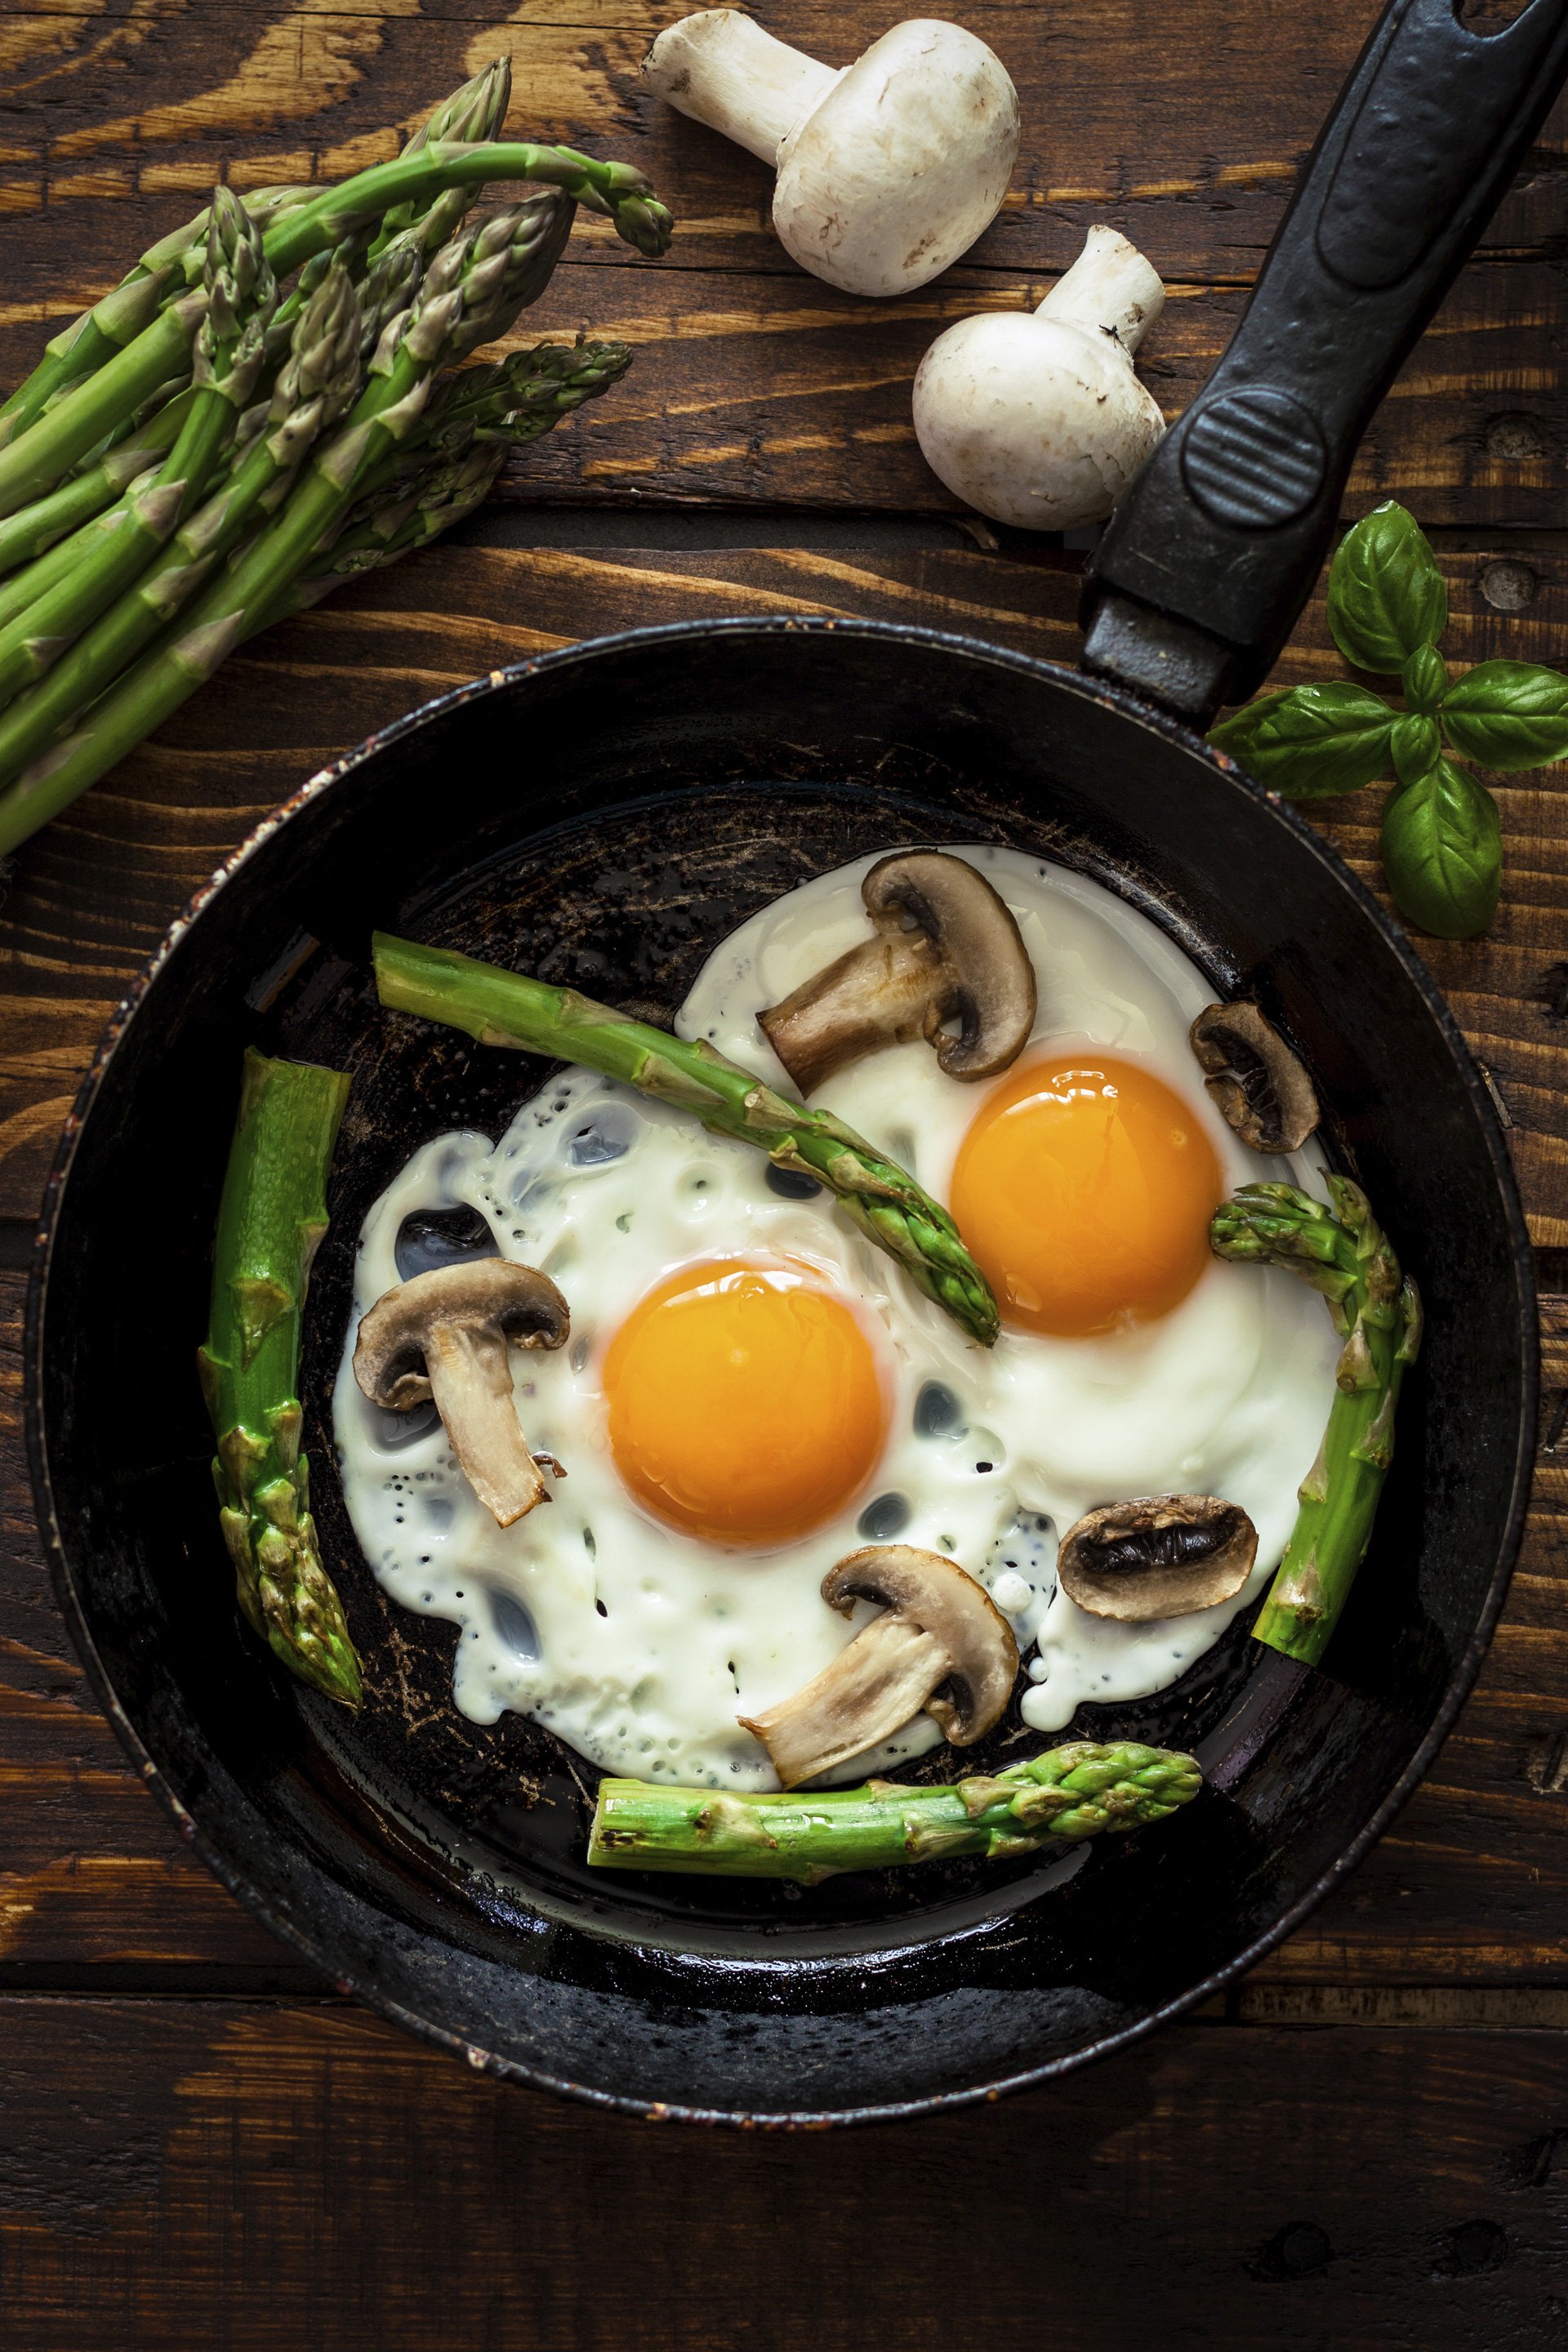 Eggs mushrooms and asparagus